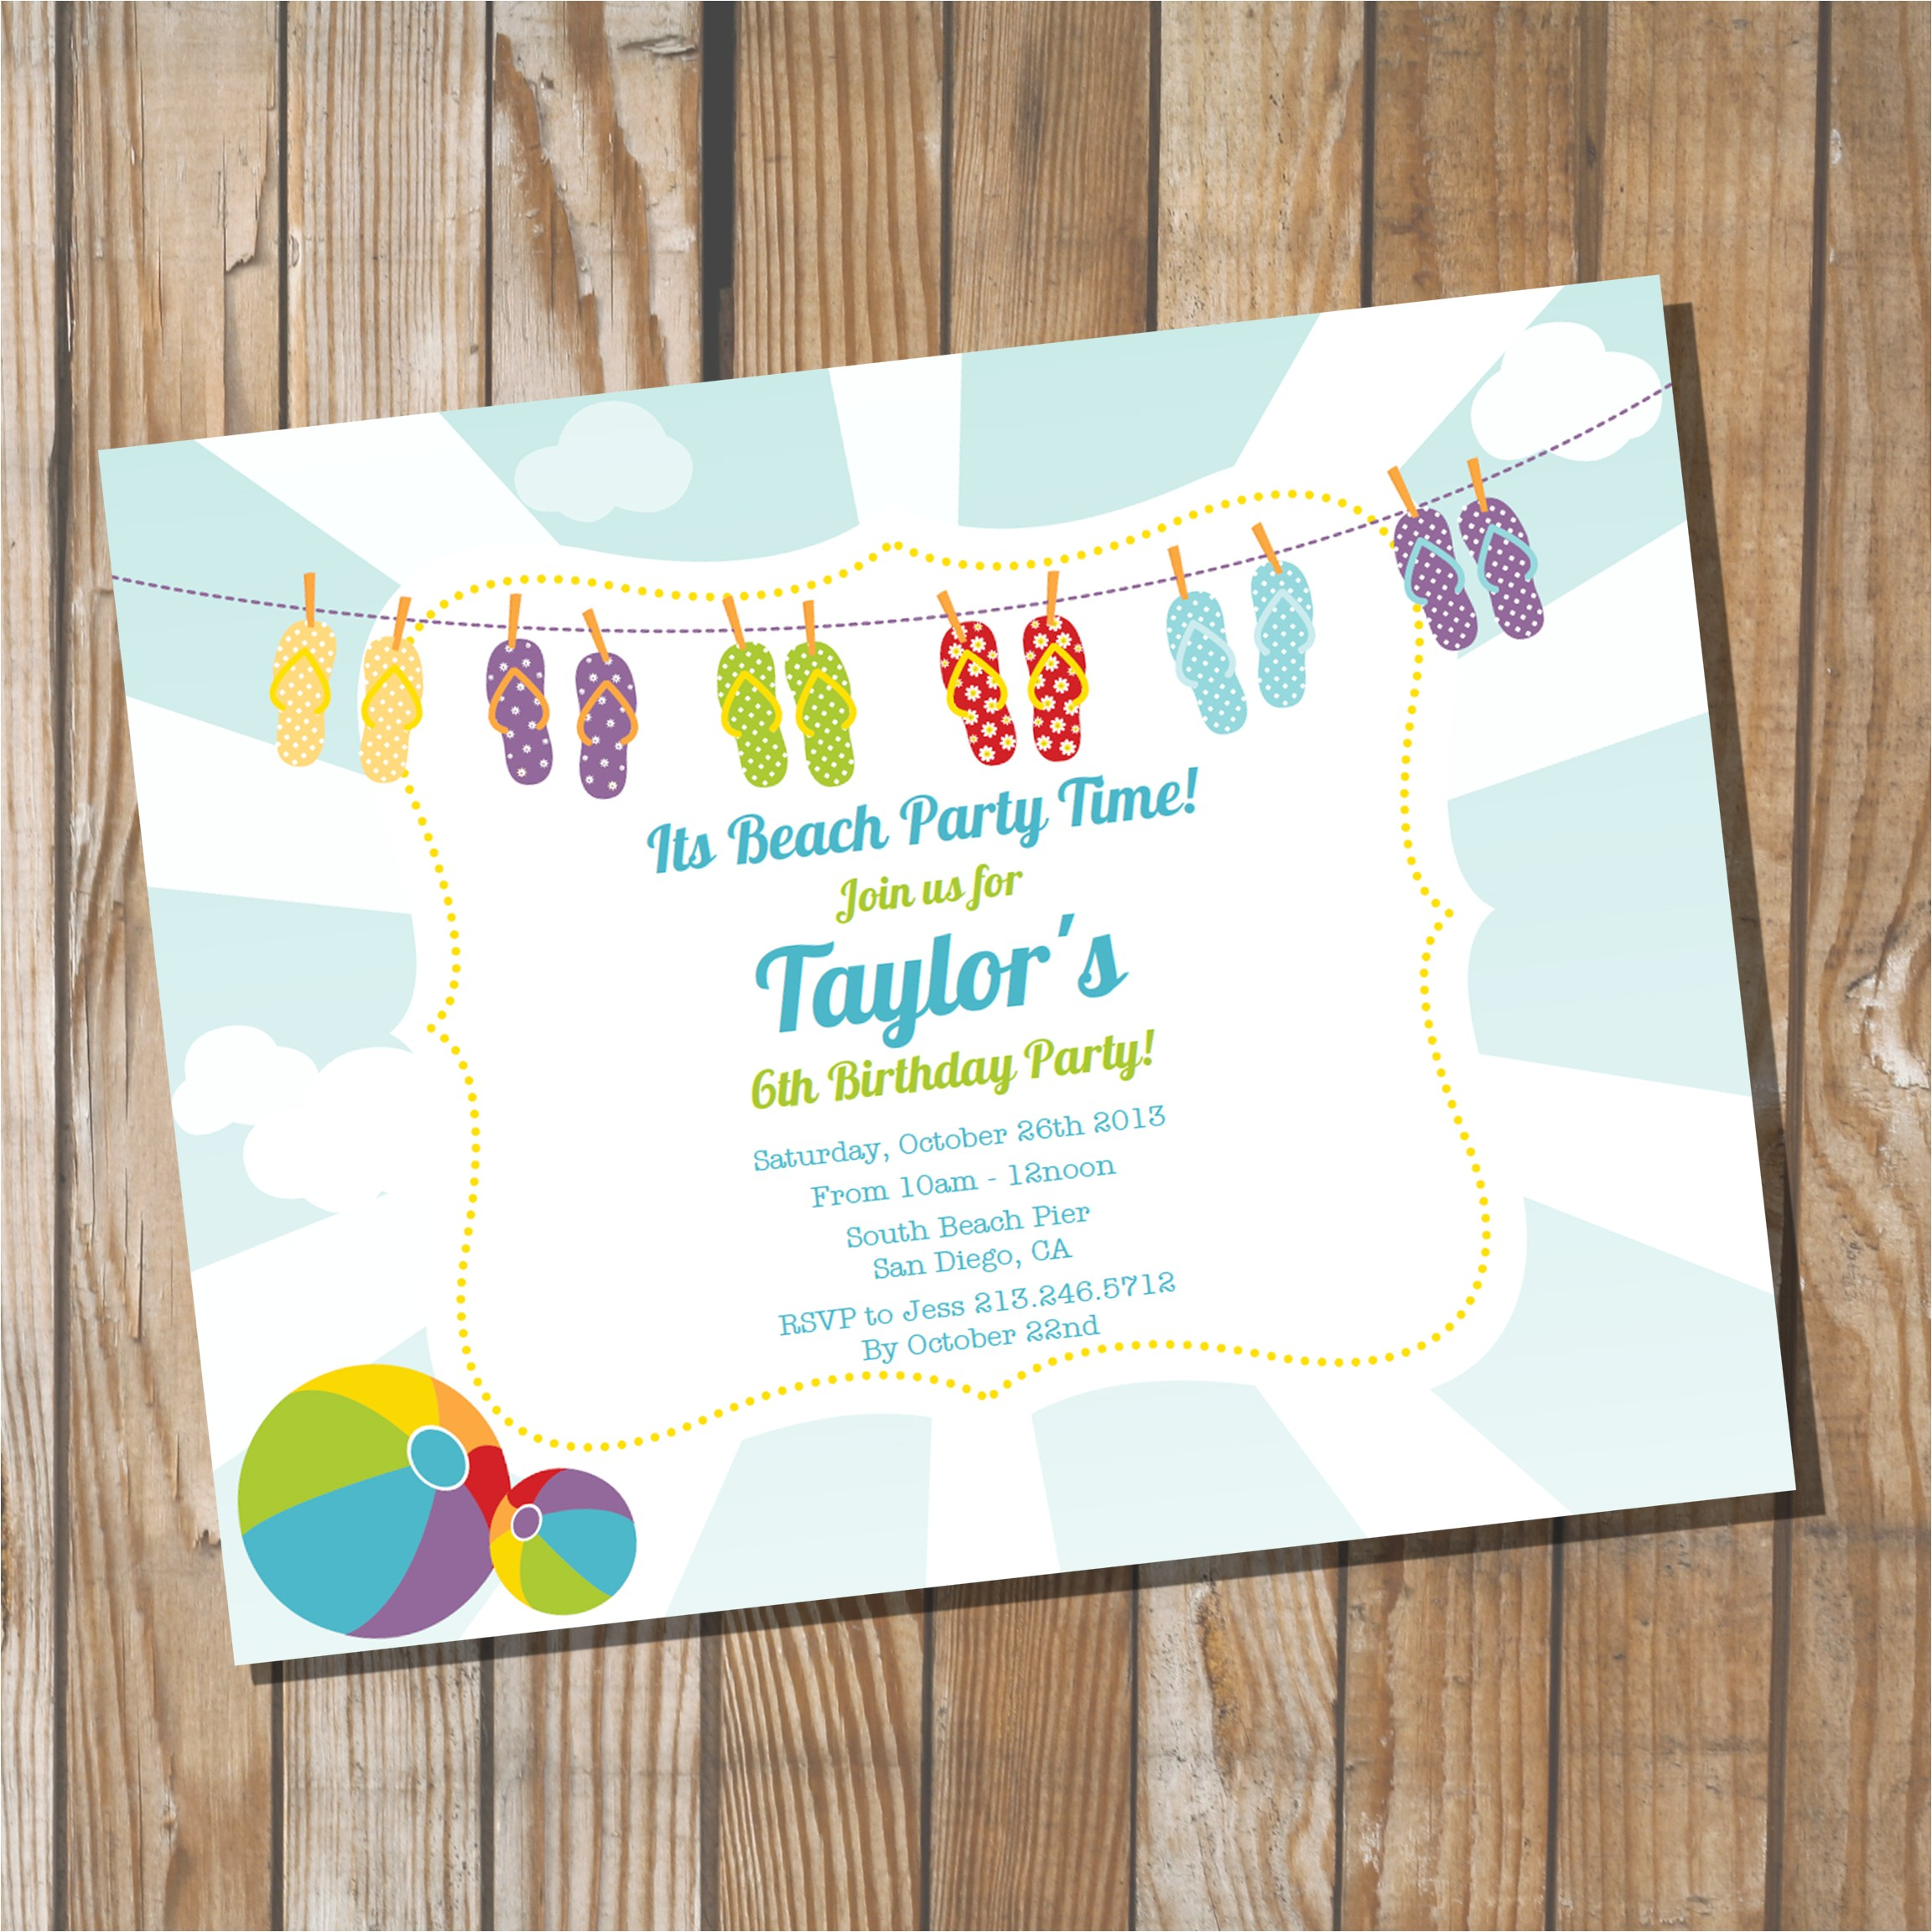 unique ideas for beach party invitations ideas